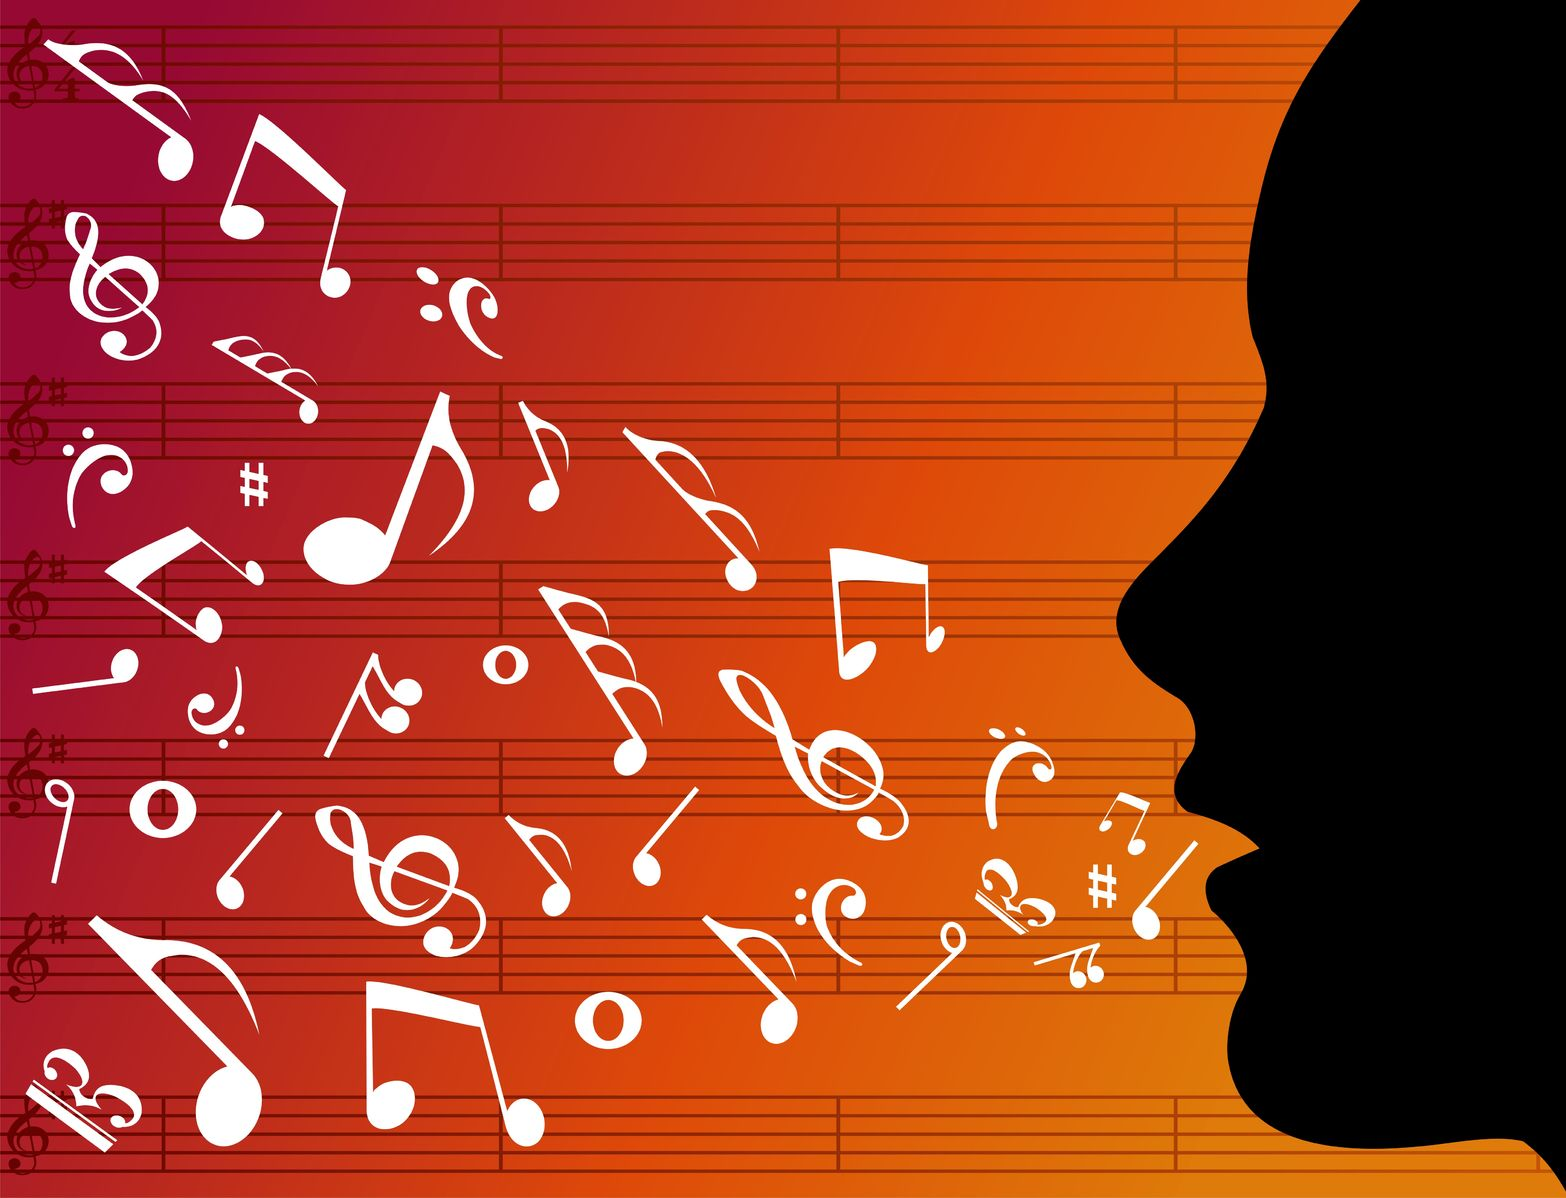 Is Music Therapy a Myth or Real?